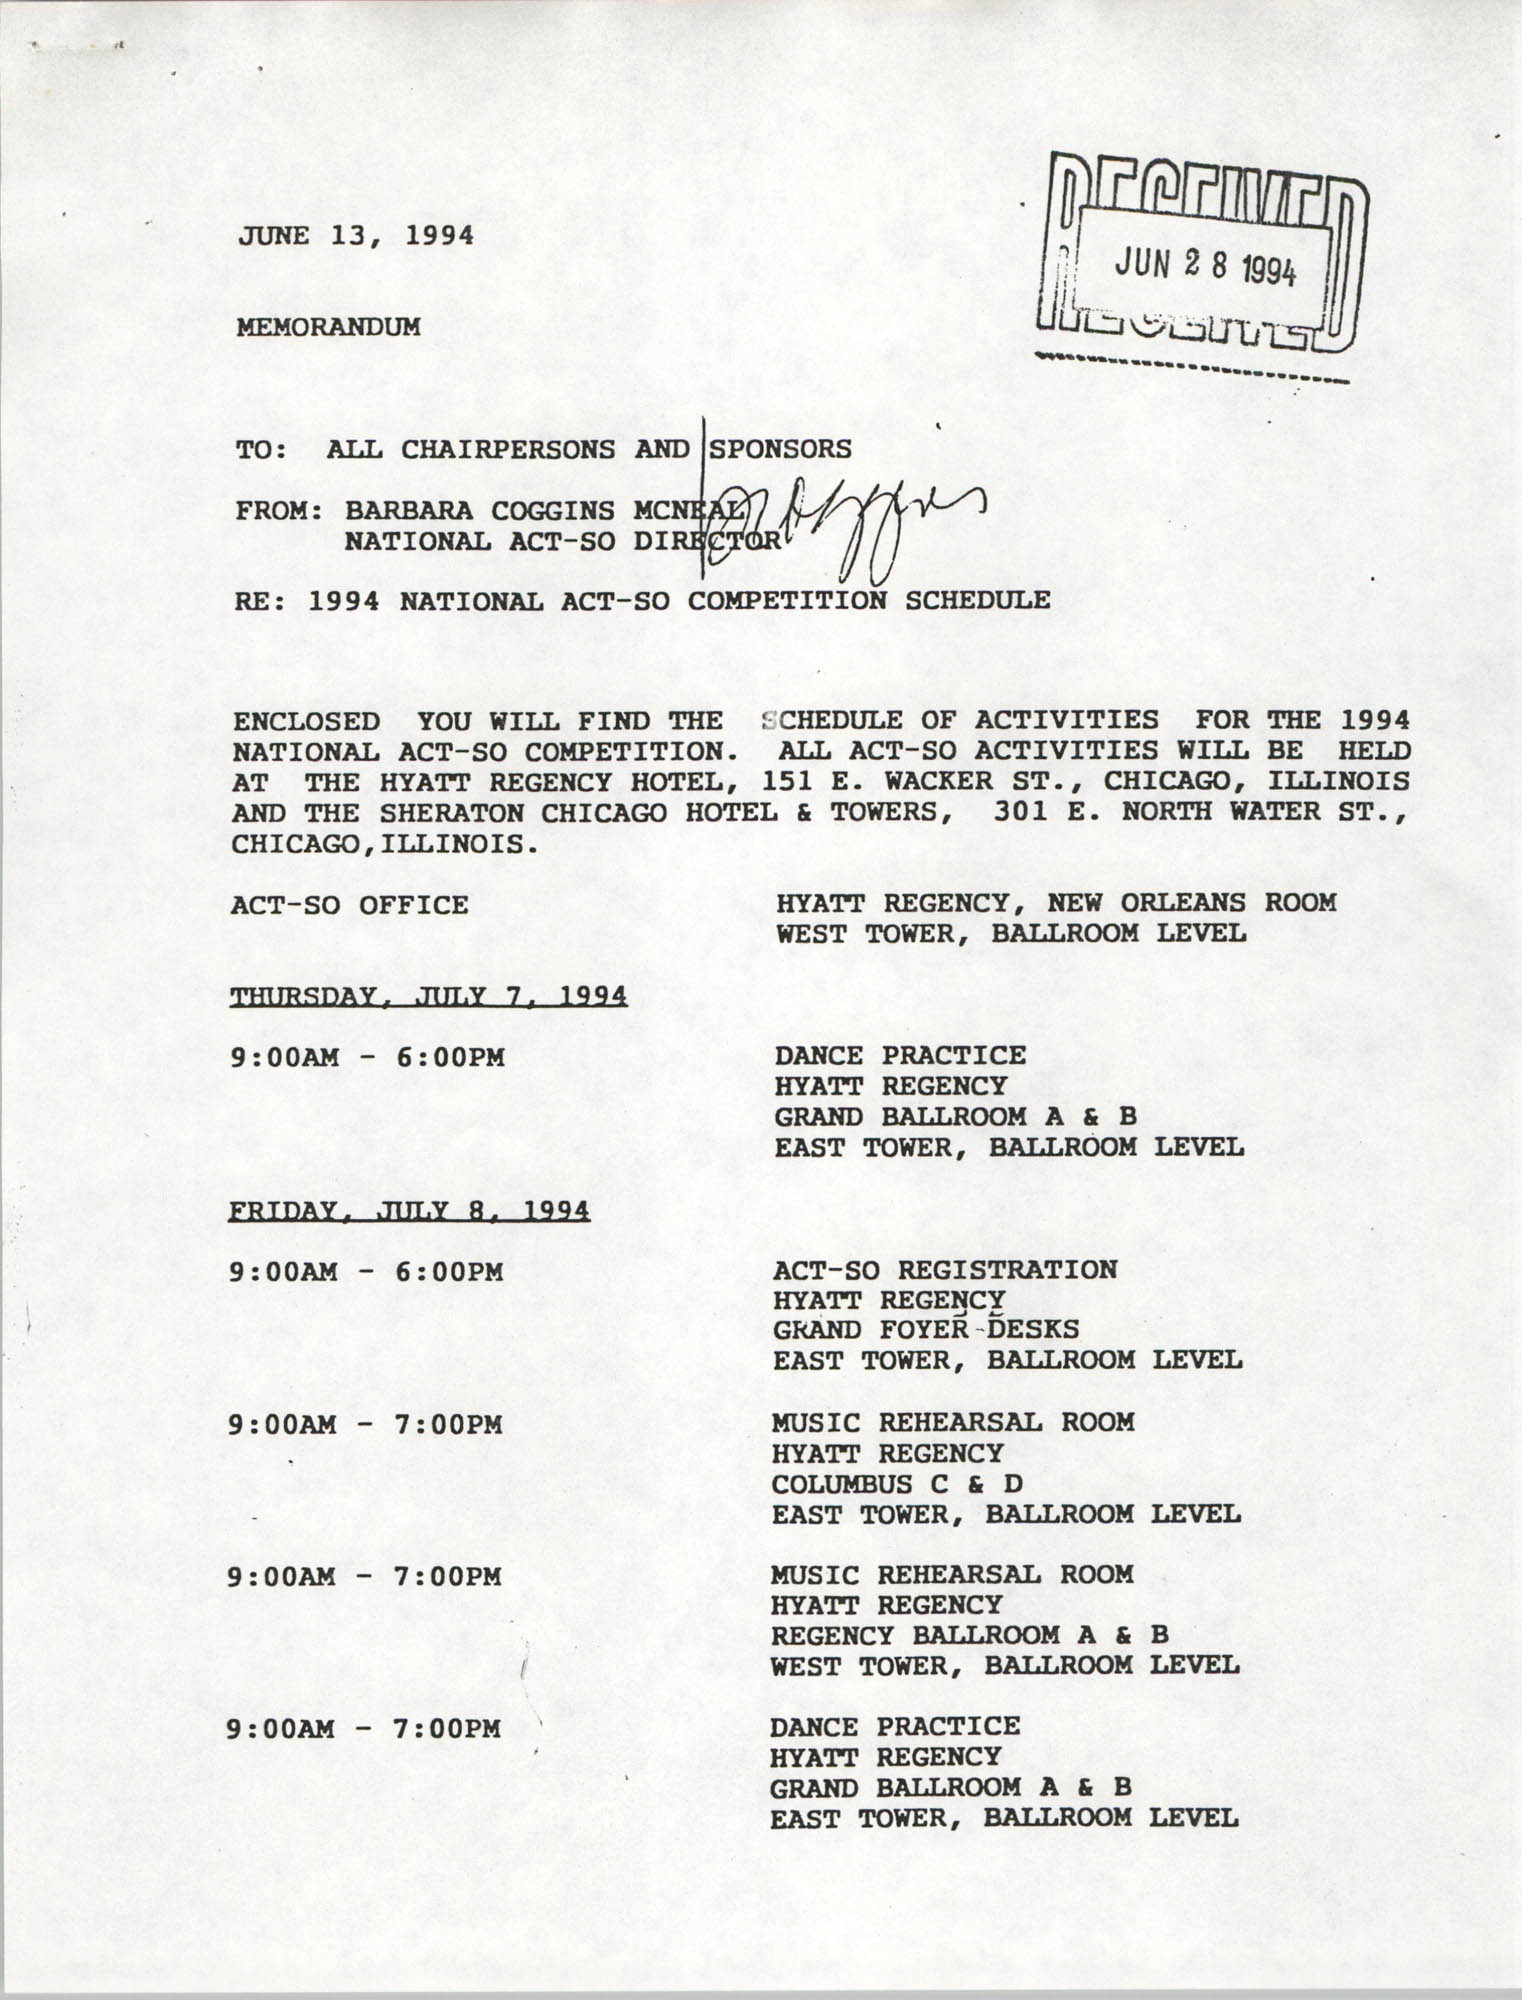 Memorandum, Barbara Coggins McNeal, June 13, 1994